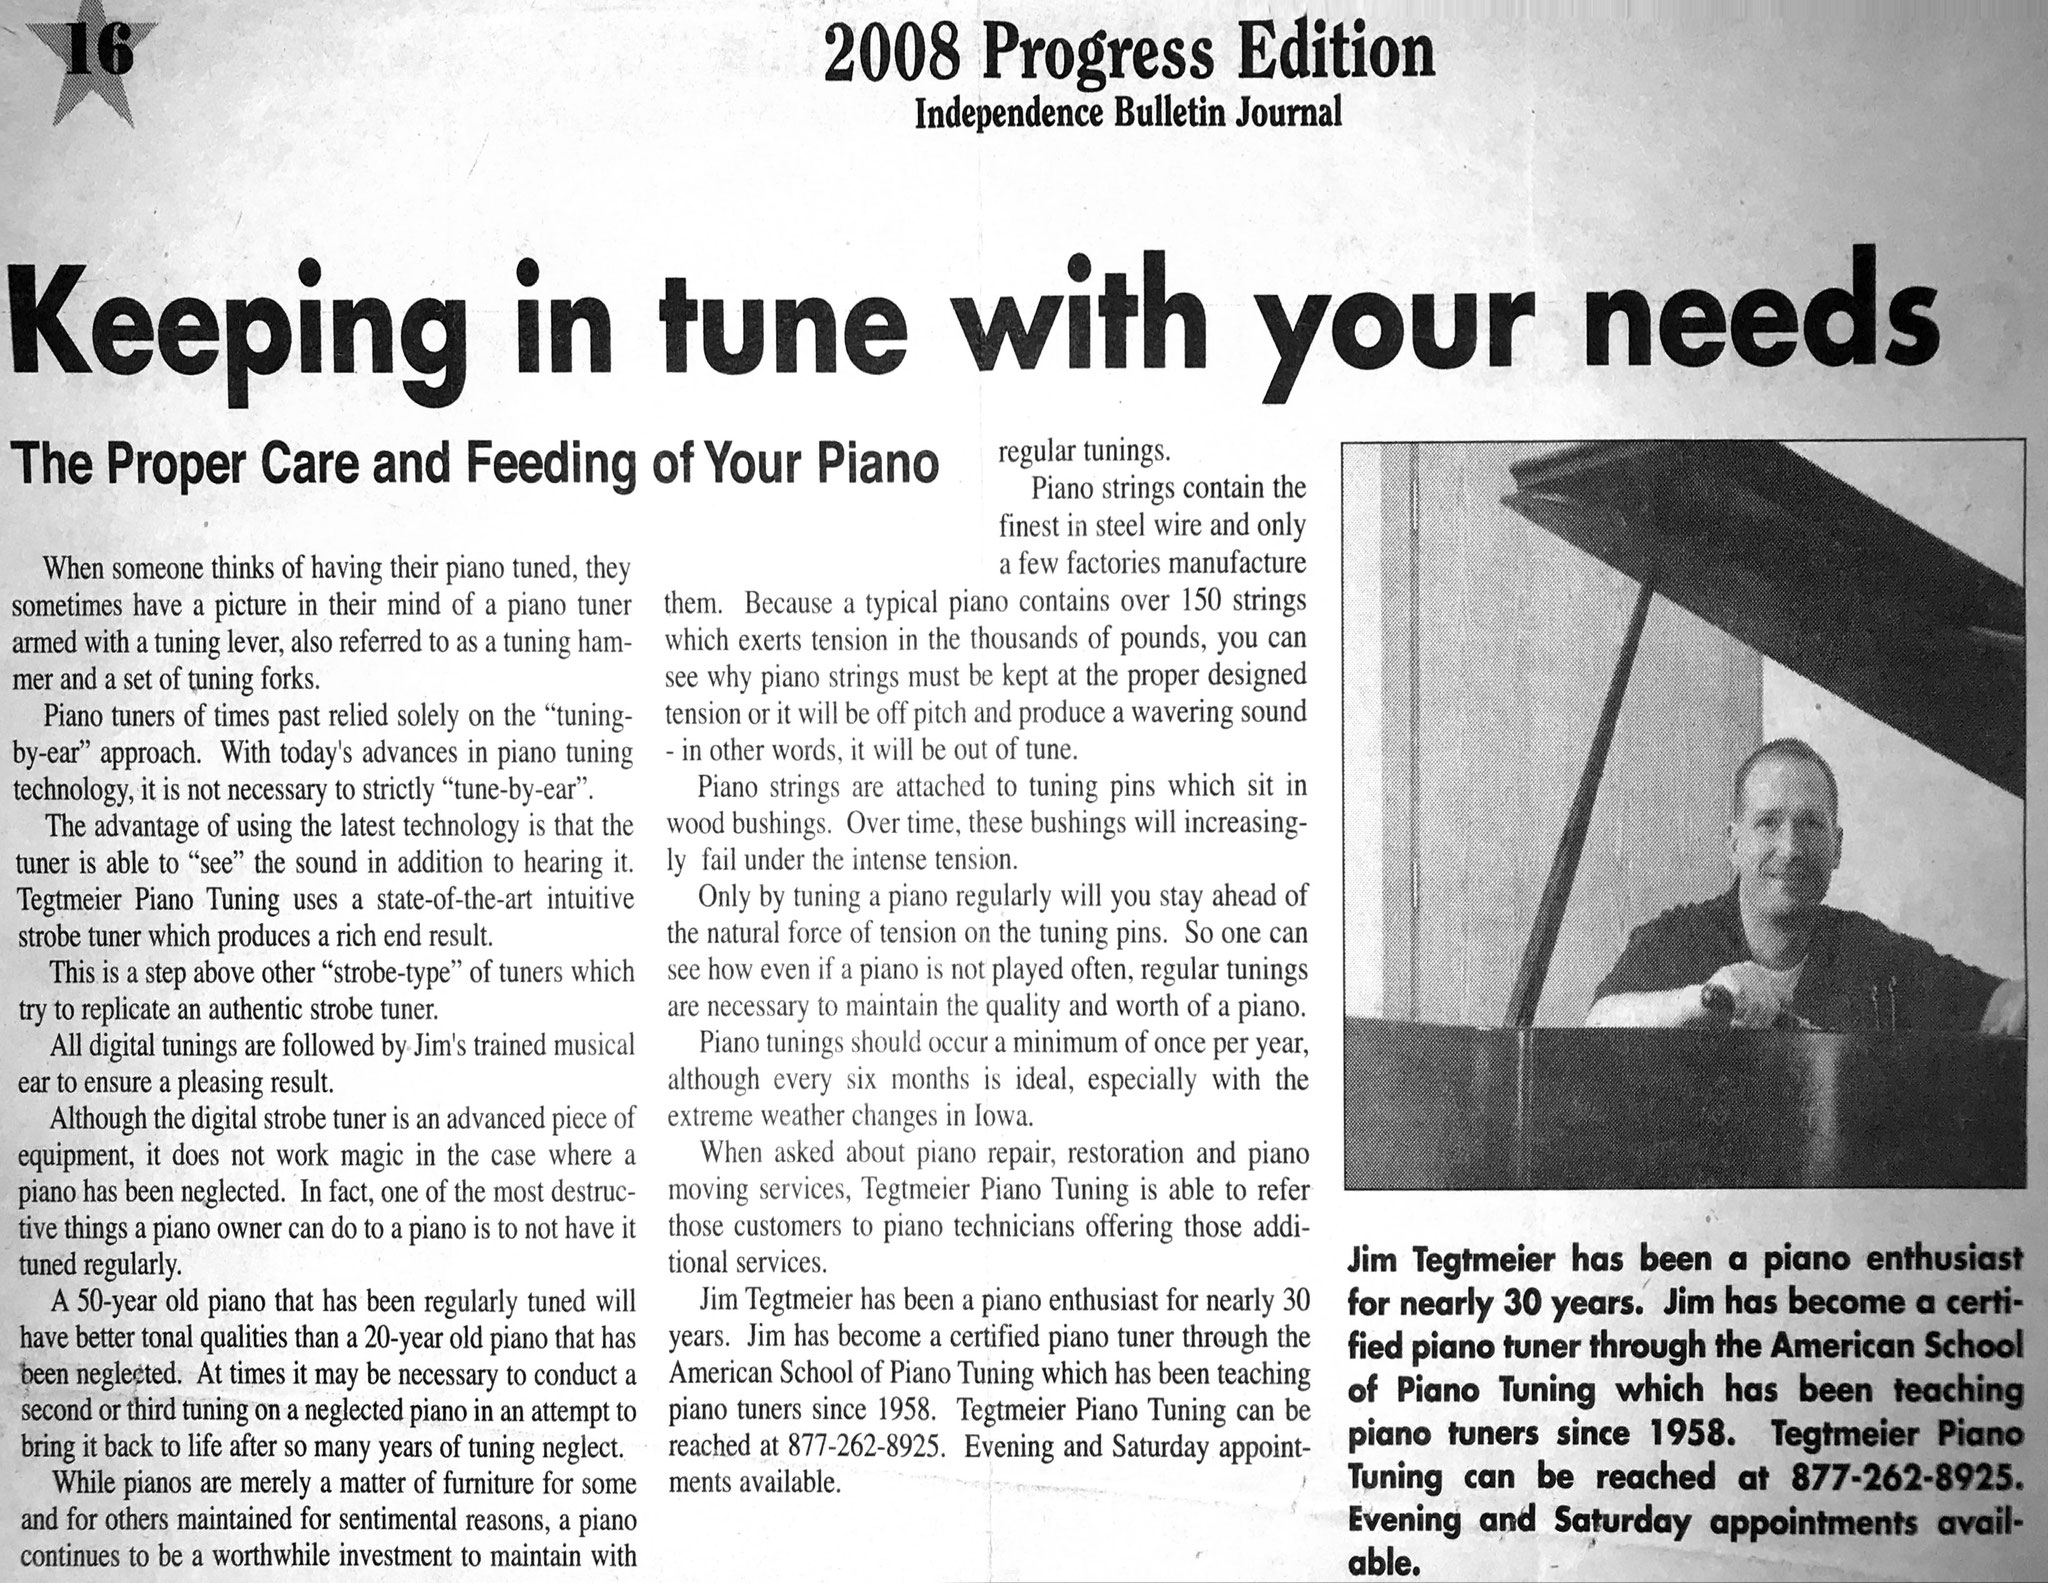 2008 Progress Edition - Independence Bulletin Journal